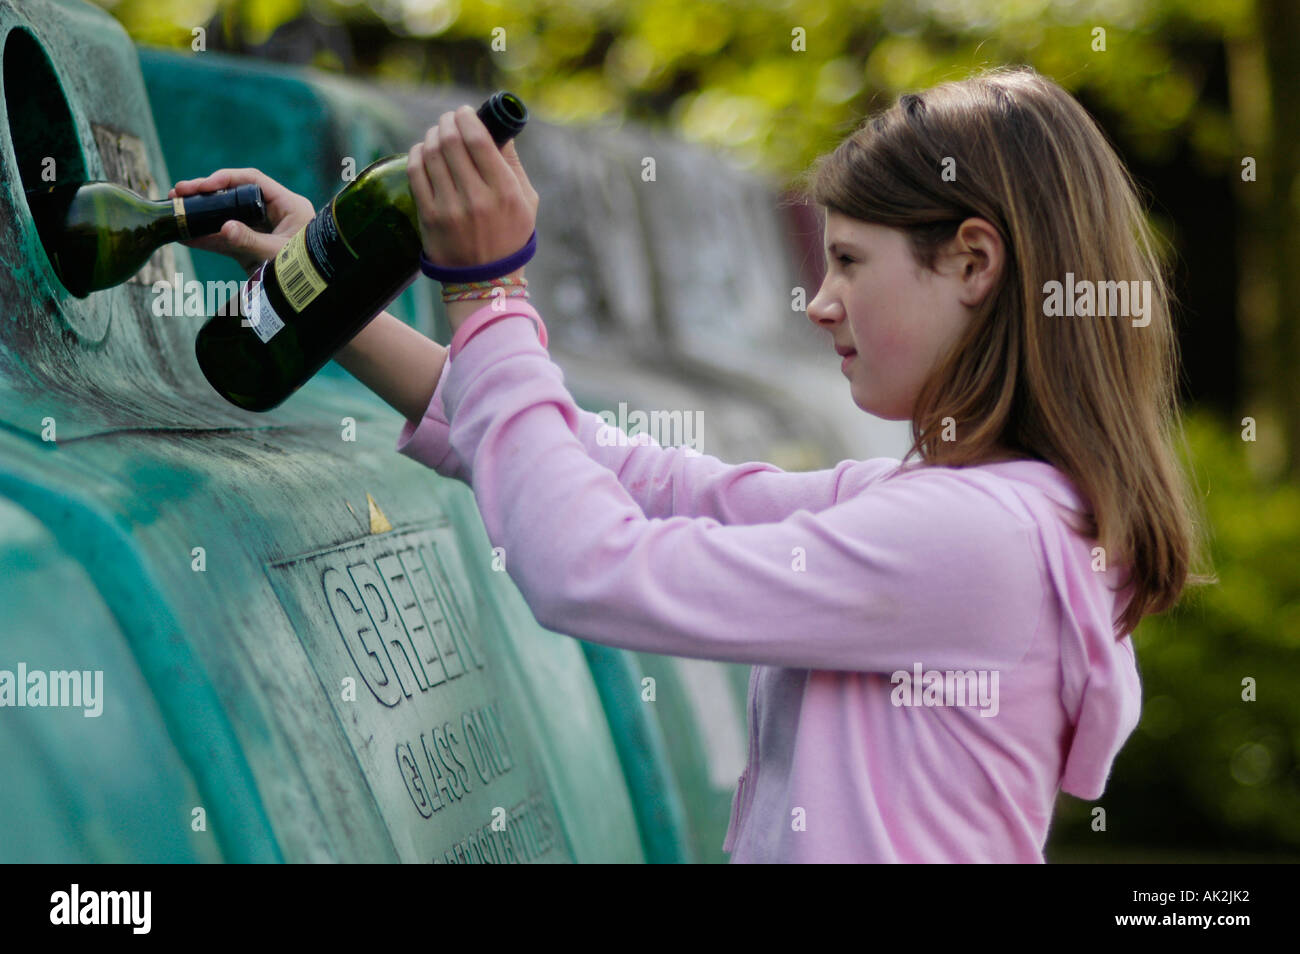 girl recycling at bottle bank - Stock Image